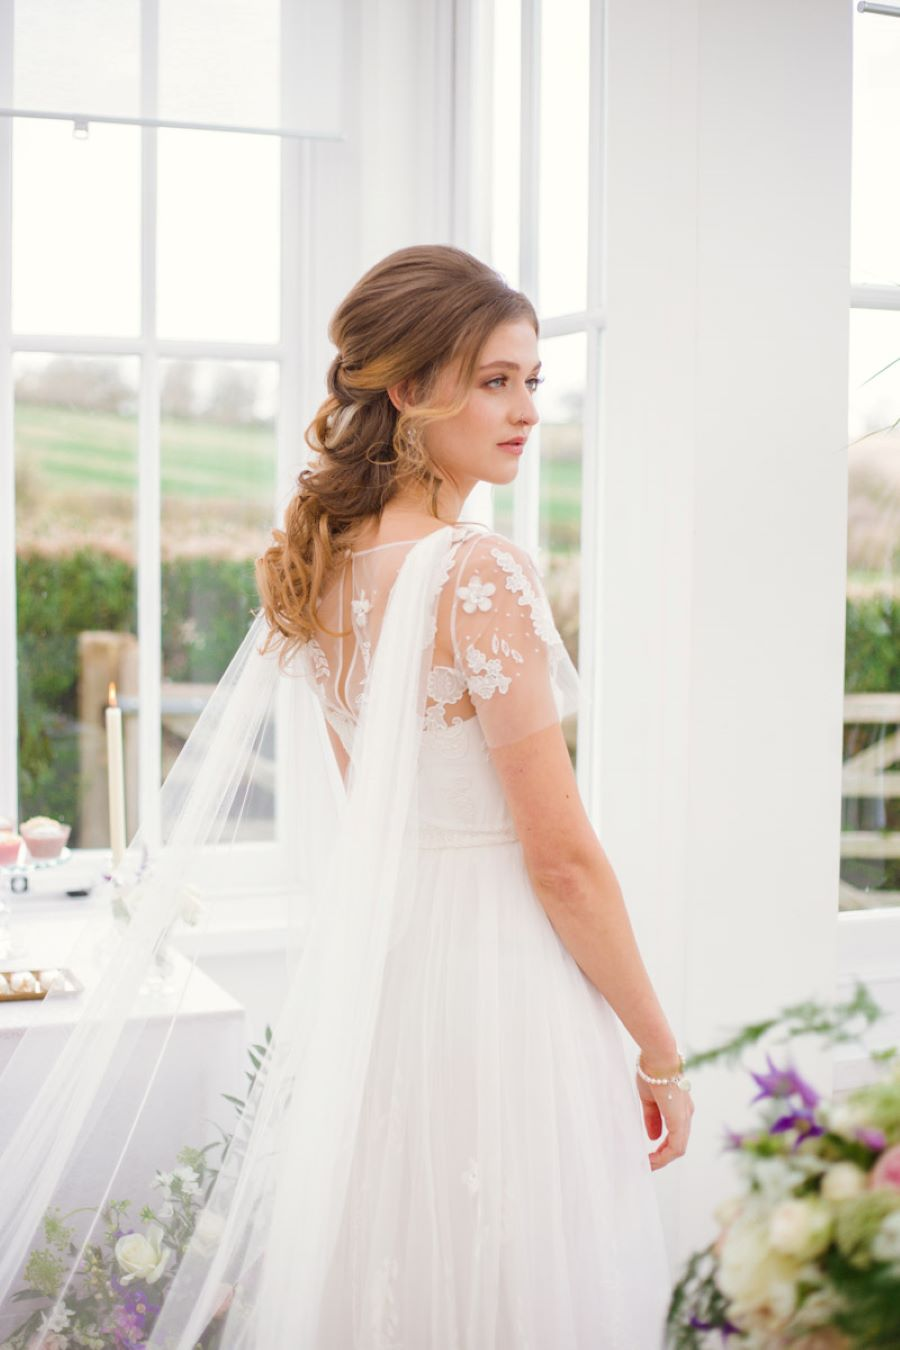 Light and romance with natural blush tones - wedding ideas from Downham Hall. Photographer credit Magical Moments Photography (7)